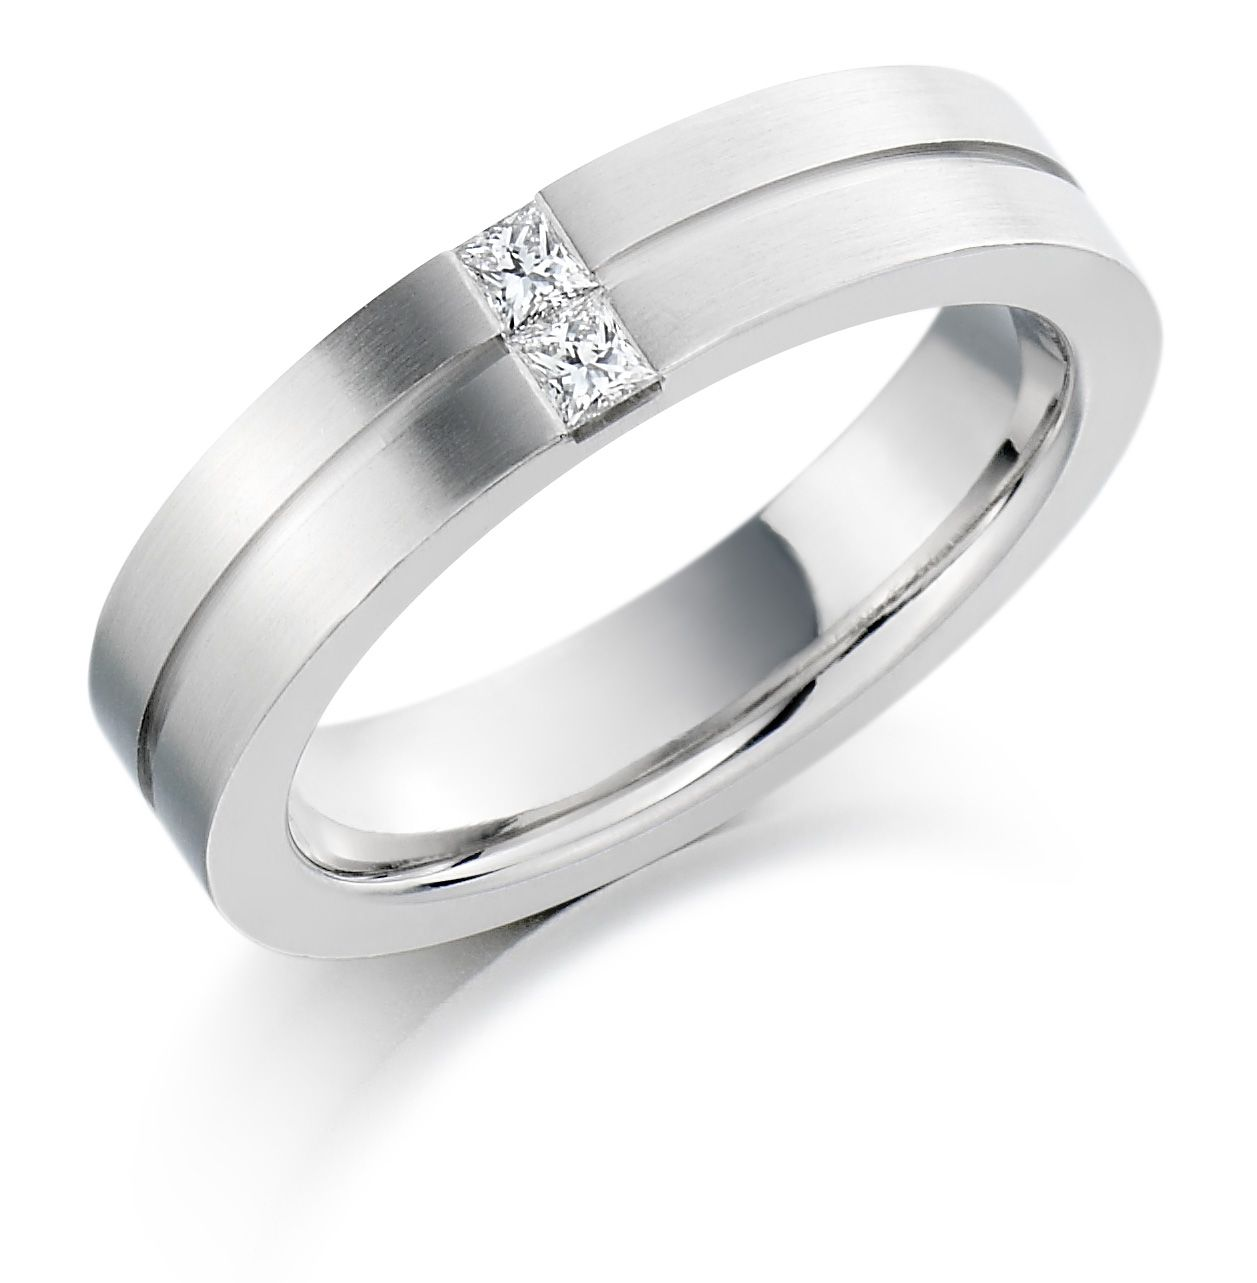 The stunning Platinum 45mm Serena diamond wedding ring